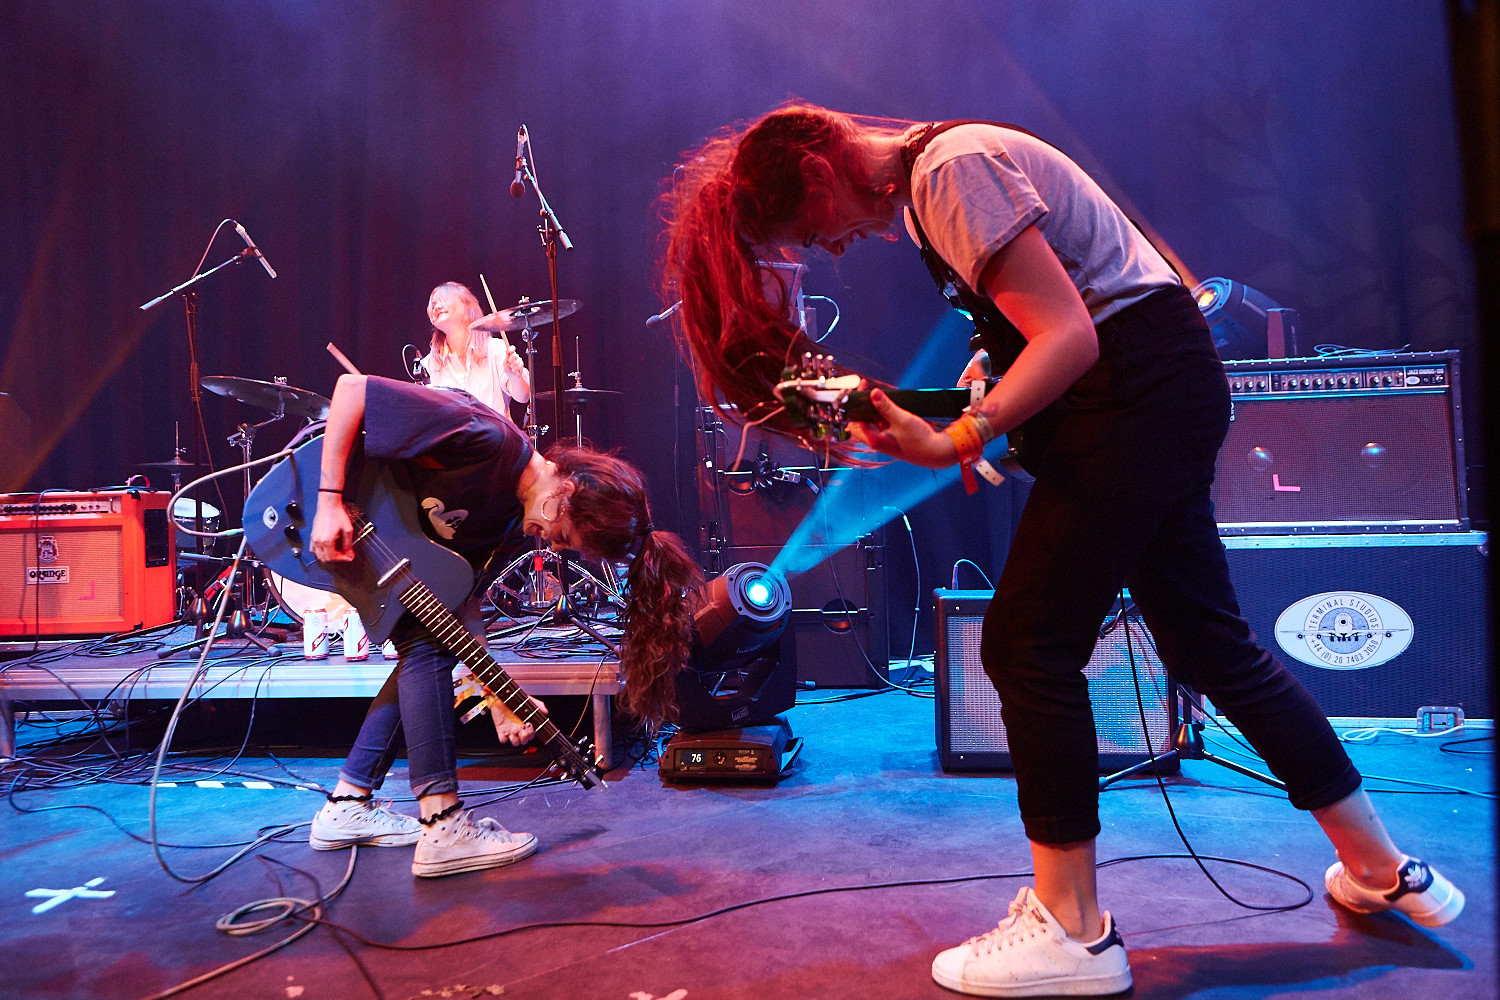 Hinds play Trent University in Nottingham as part of Dot to Dot Festival 2015.